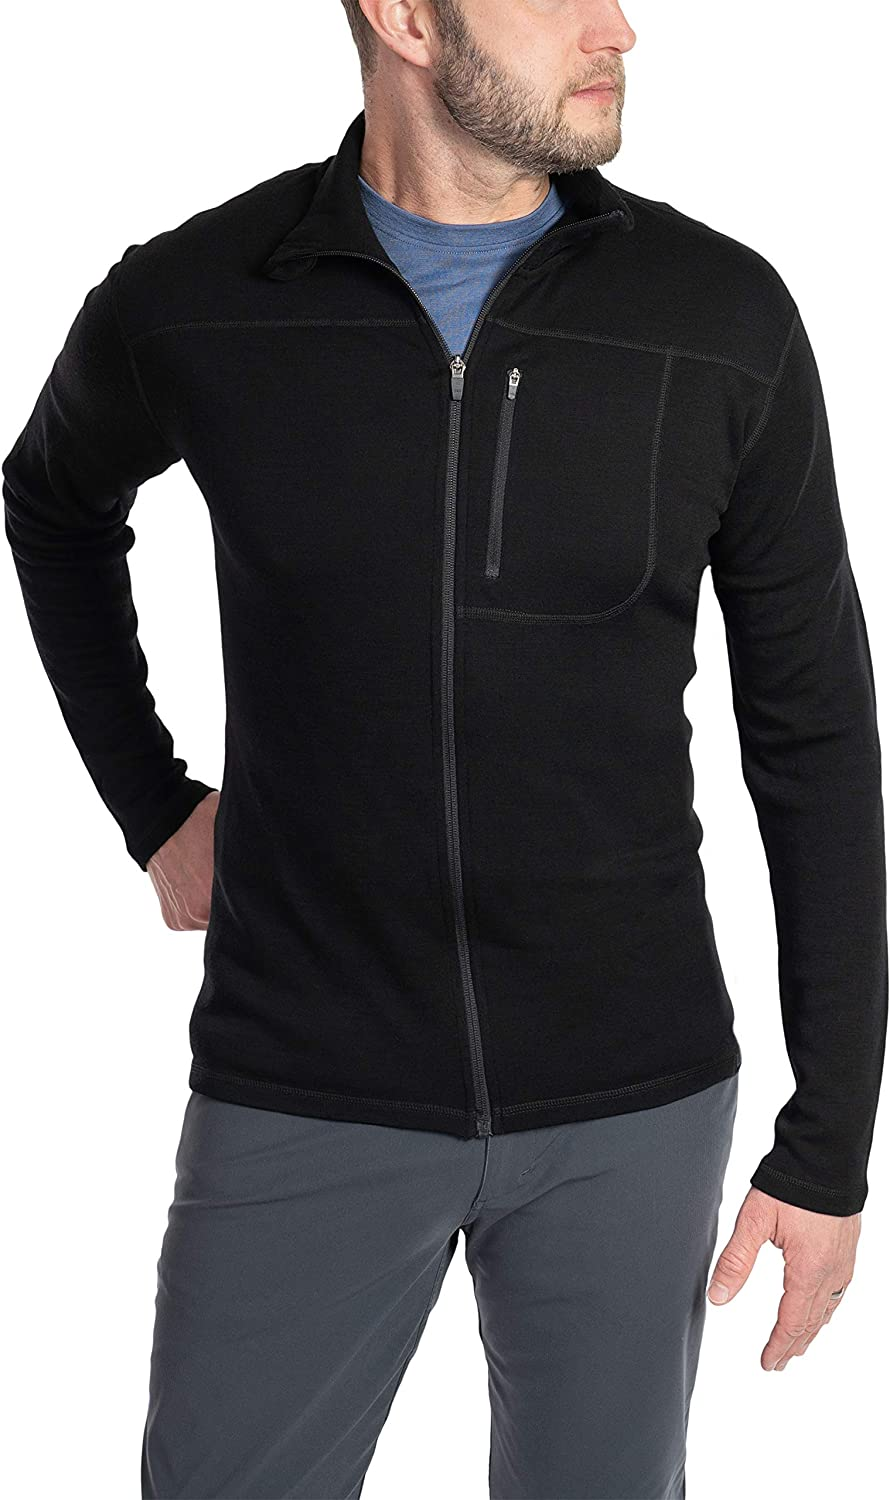 Woolly Clothing Men's Merino Pro-Knit Wool Crew Zip Up - Wicking Breathable Anti-Odor